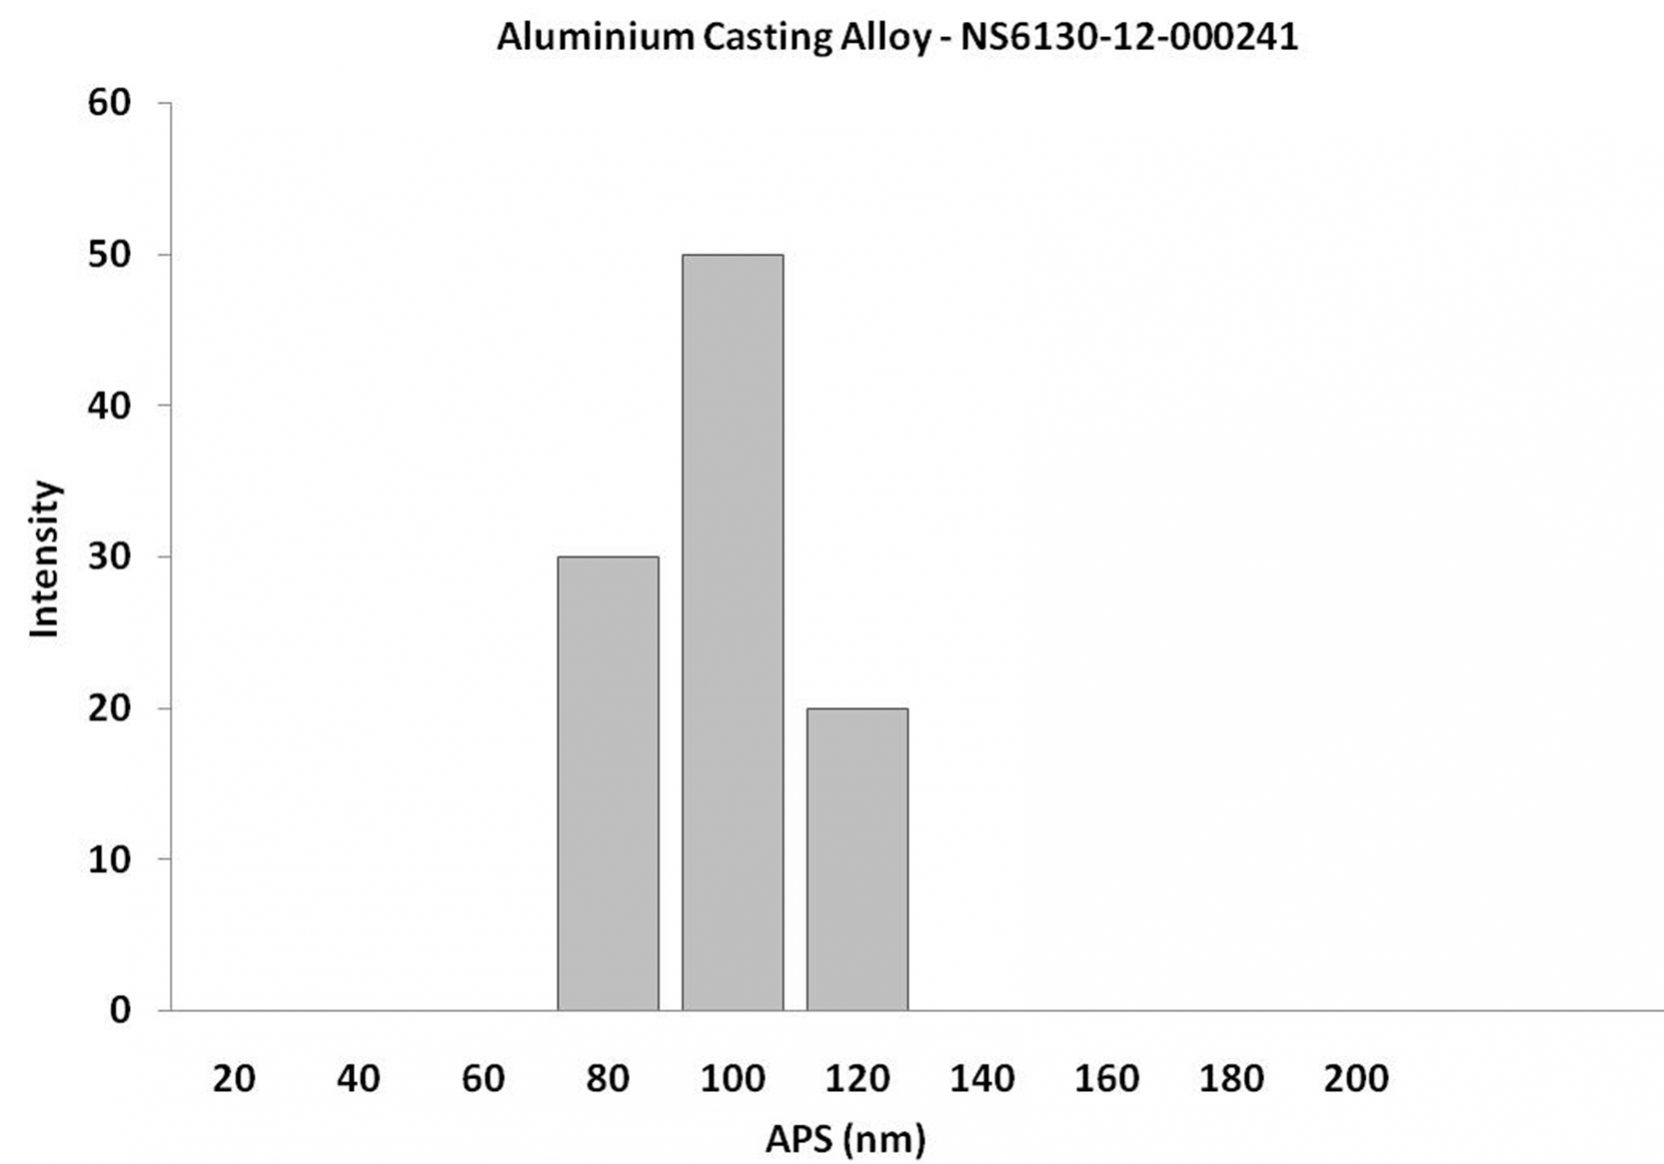 Particles Size Analysis - Aluminium Casting Alloy